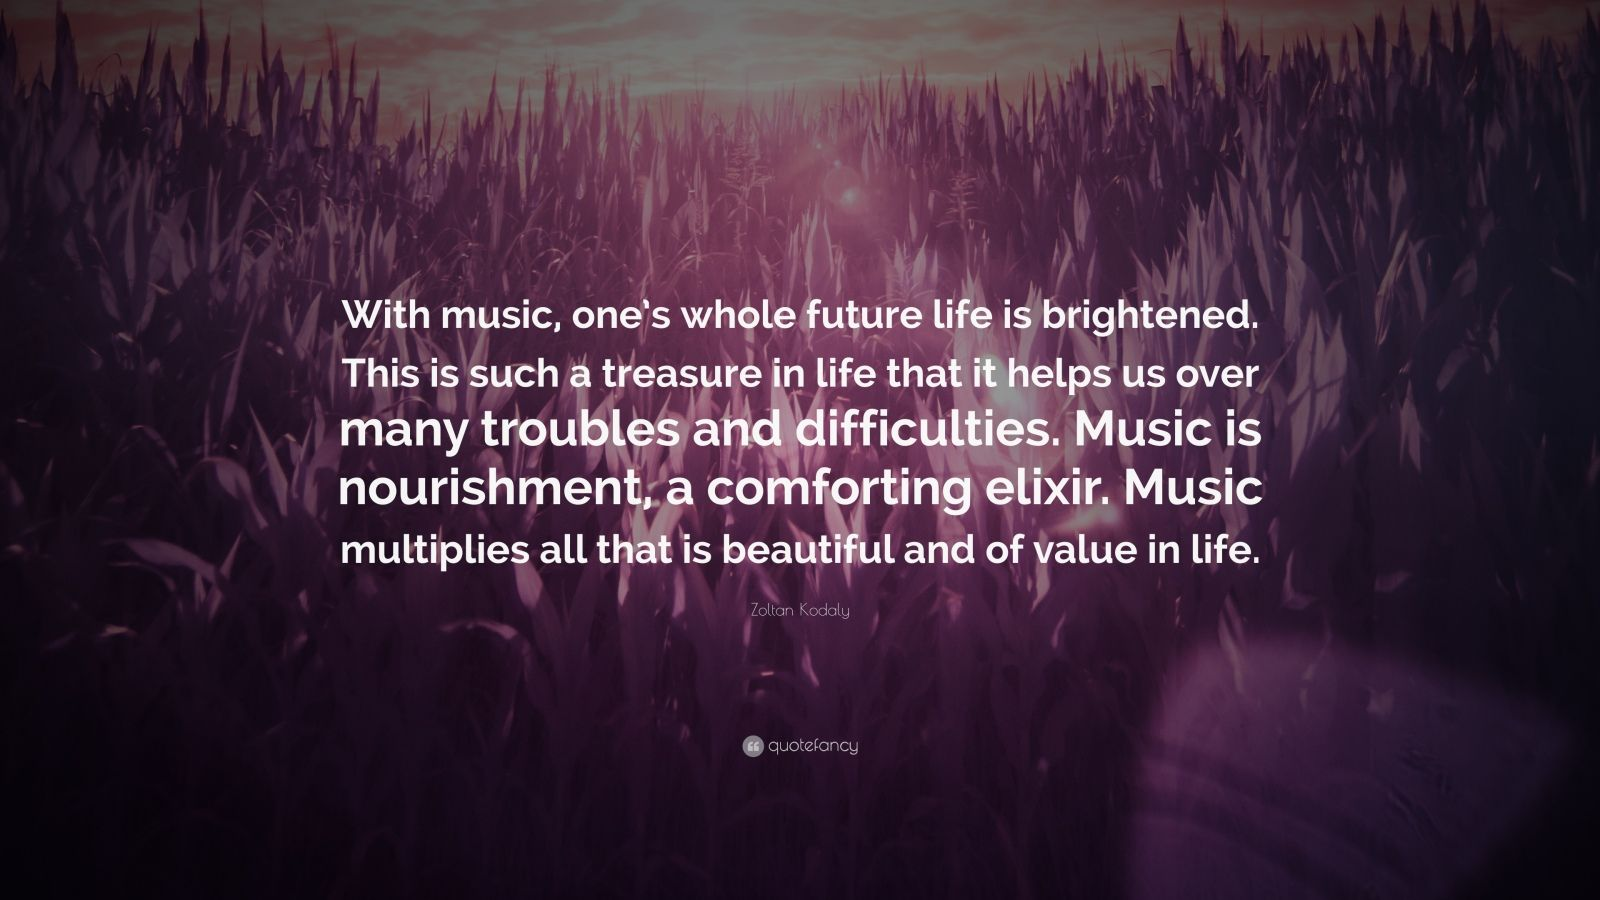 "Zoltan Kodaly Quote: ""With music, one's whole future life is brightened. This is such a treasure in life that it helps us over many troubles and difficulties. Music is nourishment, a comforting elixir. Music multiplies all that is beautiful and of value in life."""